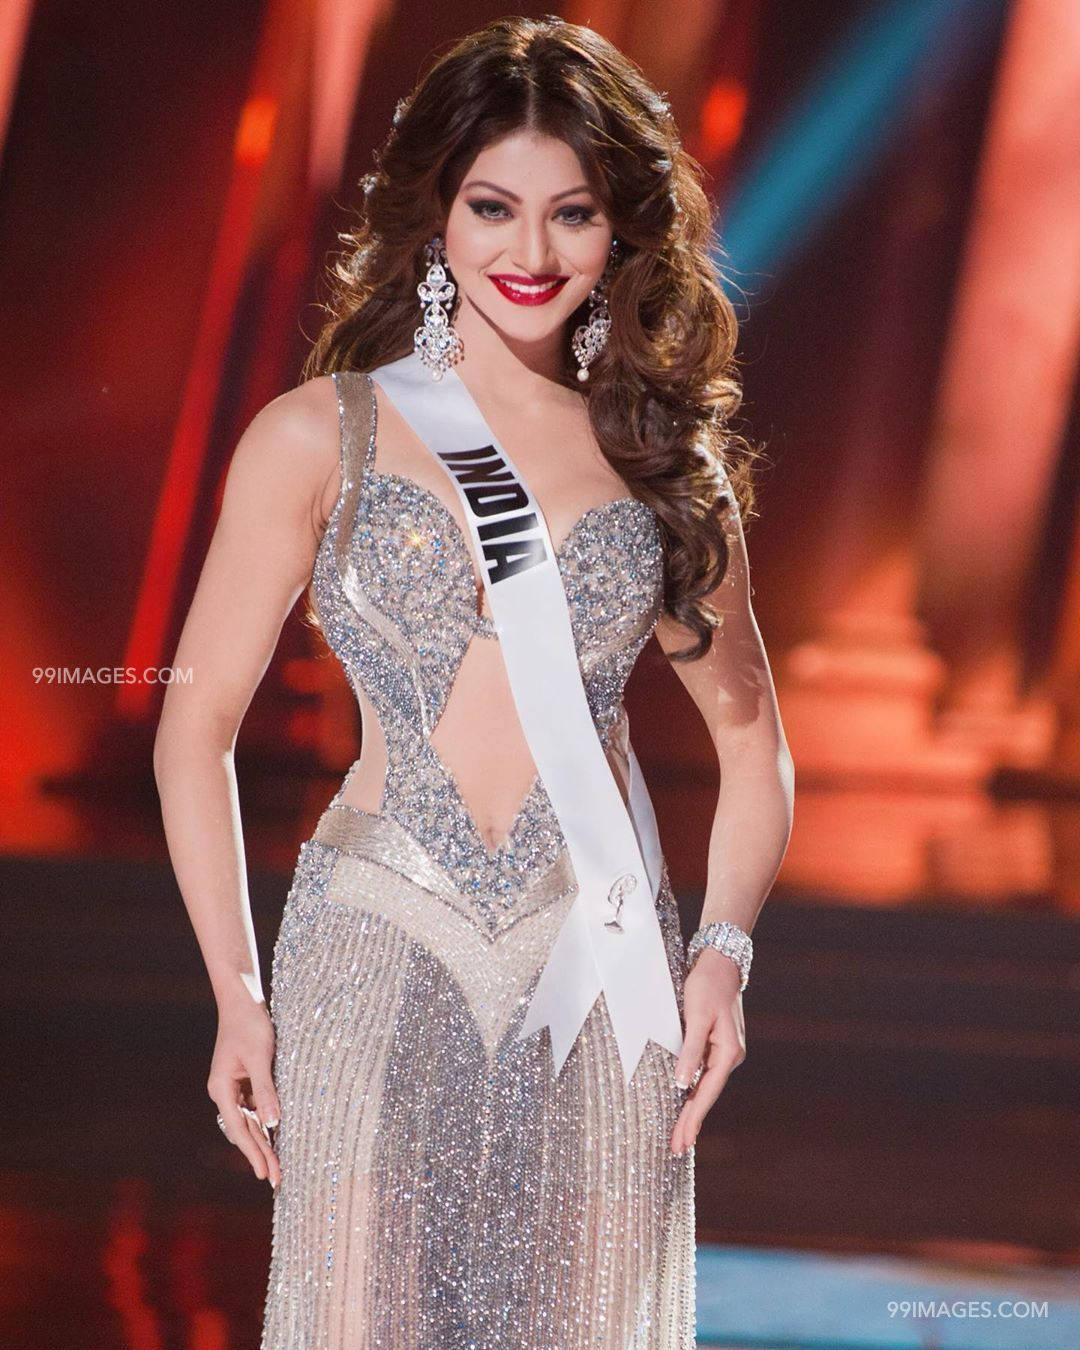 Urvashi Rautela Beautiful Photos & Mobile Wallpapers HD (Android/iPhone) (1080p) (36279) - Urvashi Rautela